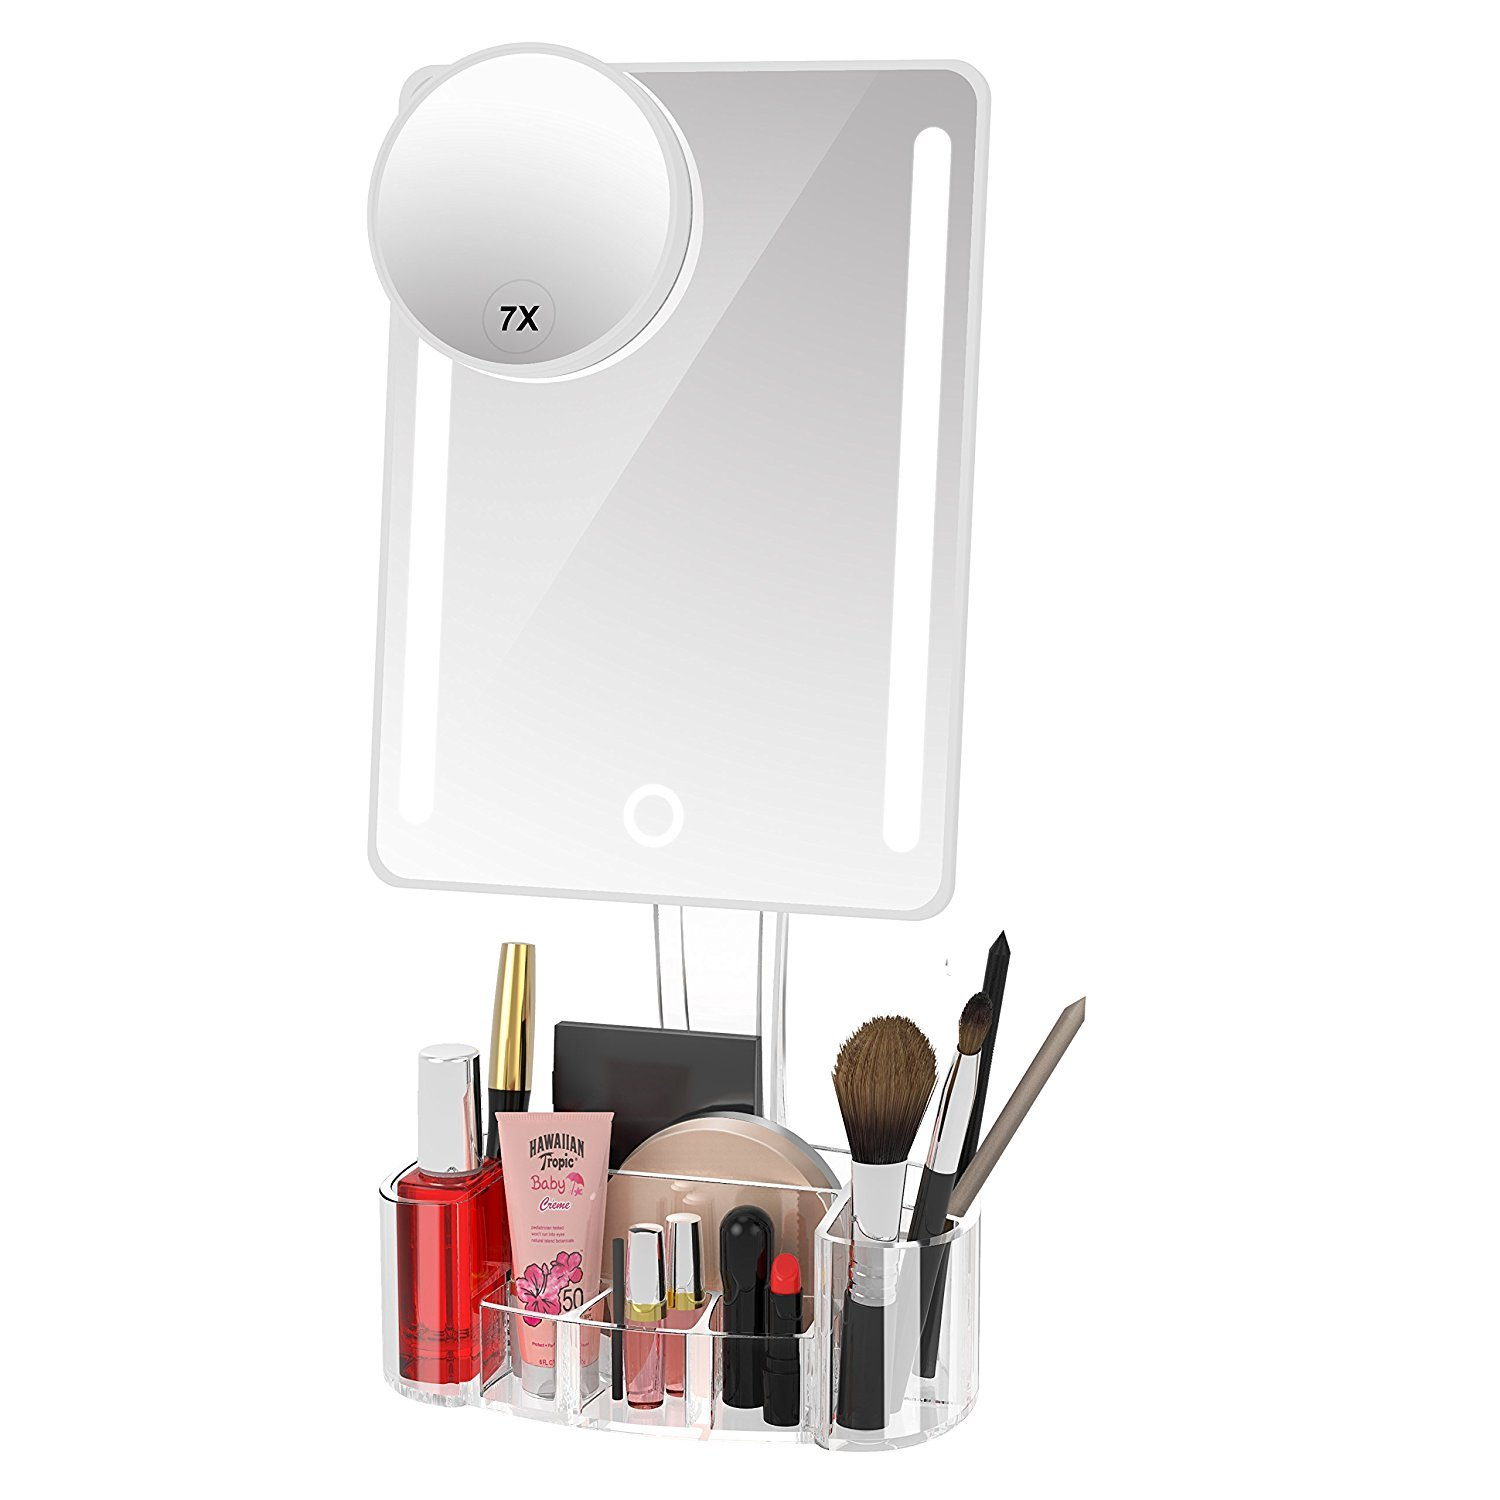 Artifi Lighted Vanity Mirror, Lighted Makeup Mirror with Acrylic Makeup Organizer and Removable 7X Magnification Makeup Mirror with Lights, Xmas Gifts